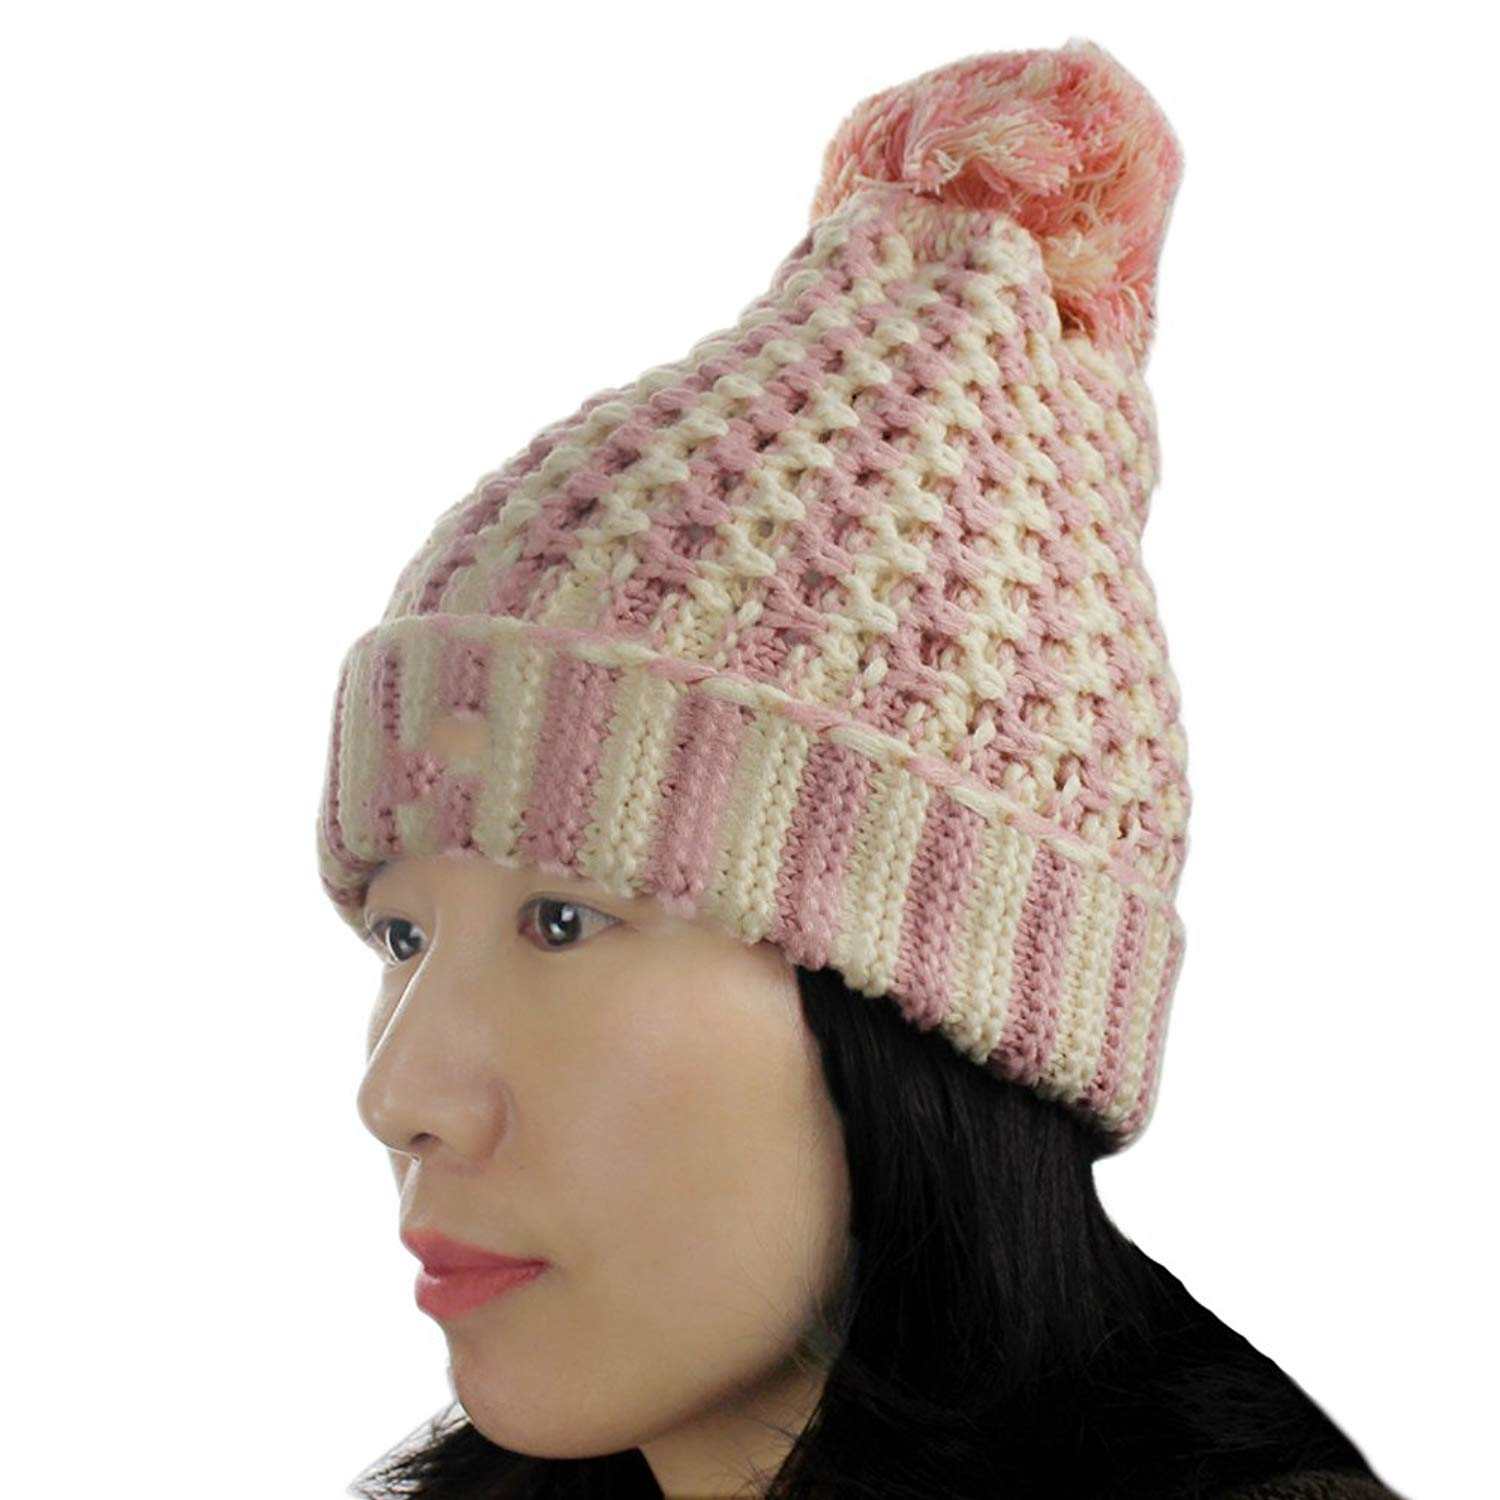 7f9a10c5665 Get Quotations · Women s Winter Stripes Knitted Pom Pom Skiing Slouchy Baggy  Skull Beanie Hat Cap